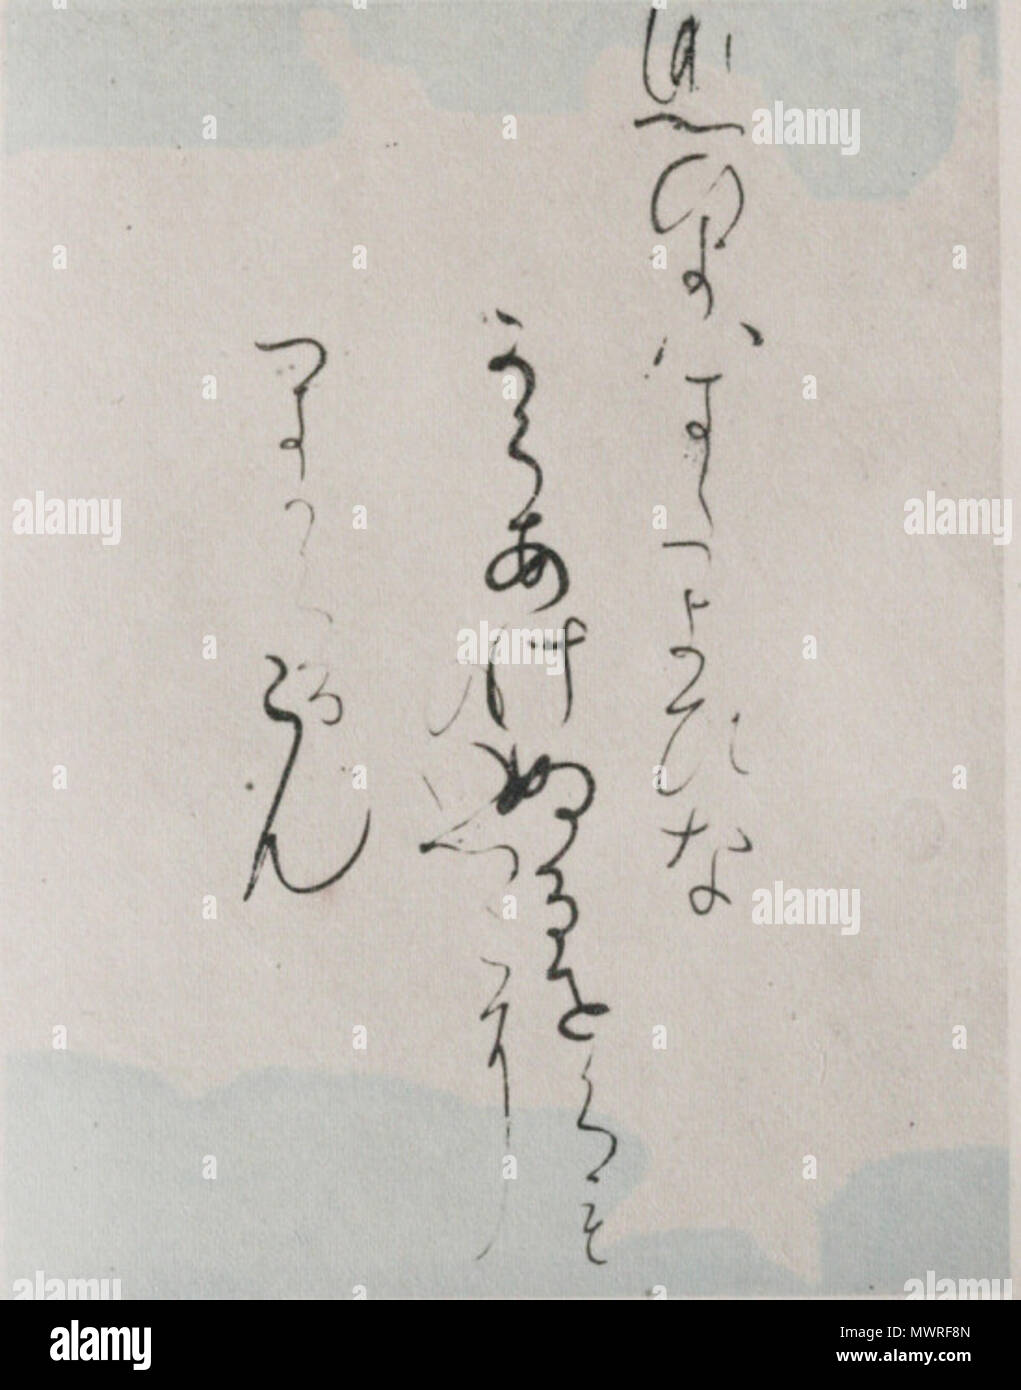 . English: MASU-SHIKISHI, a calligraphy of a poem by KIYOHARA-FUKAYABU(early 10th century). 13.7 cm height, 11.8cm wide. Ink on ornamented paper. 日本語: 升色紙 清原深養父集の一部 . 12th century. Anonymous 12th century, Japan 406 MASU SHIKISHI - Stock Image